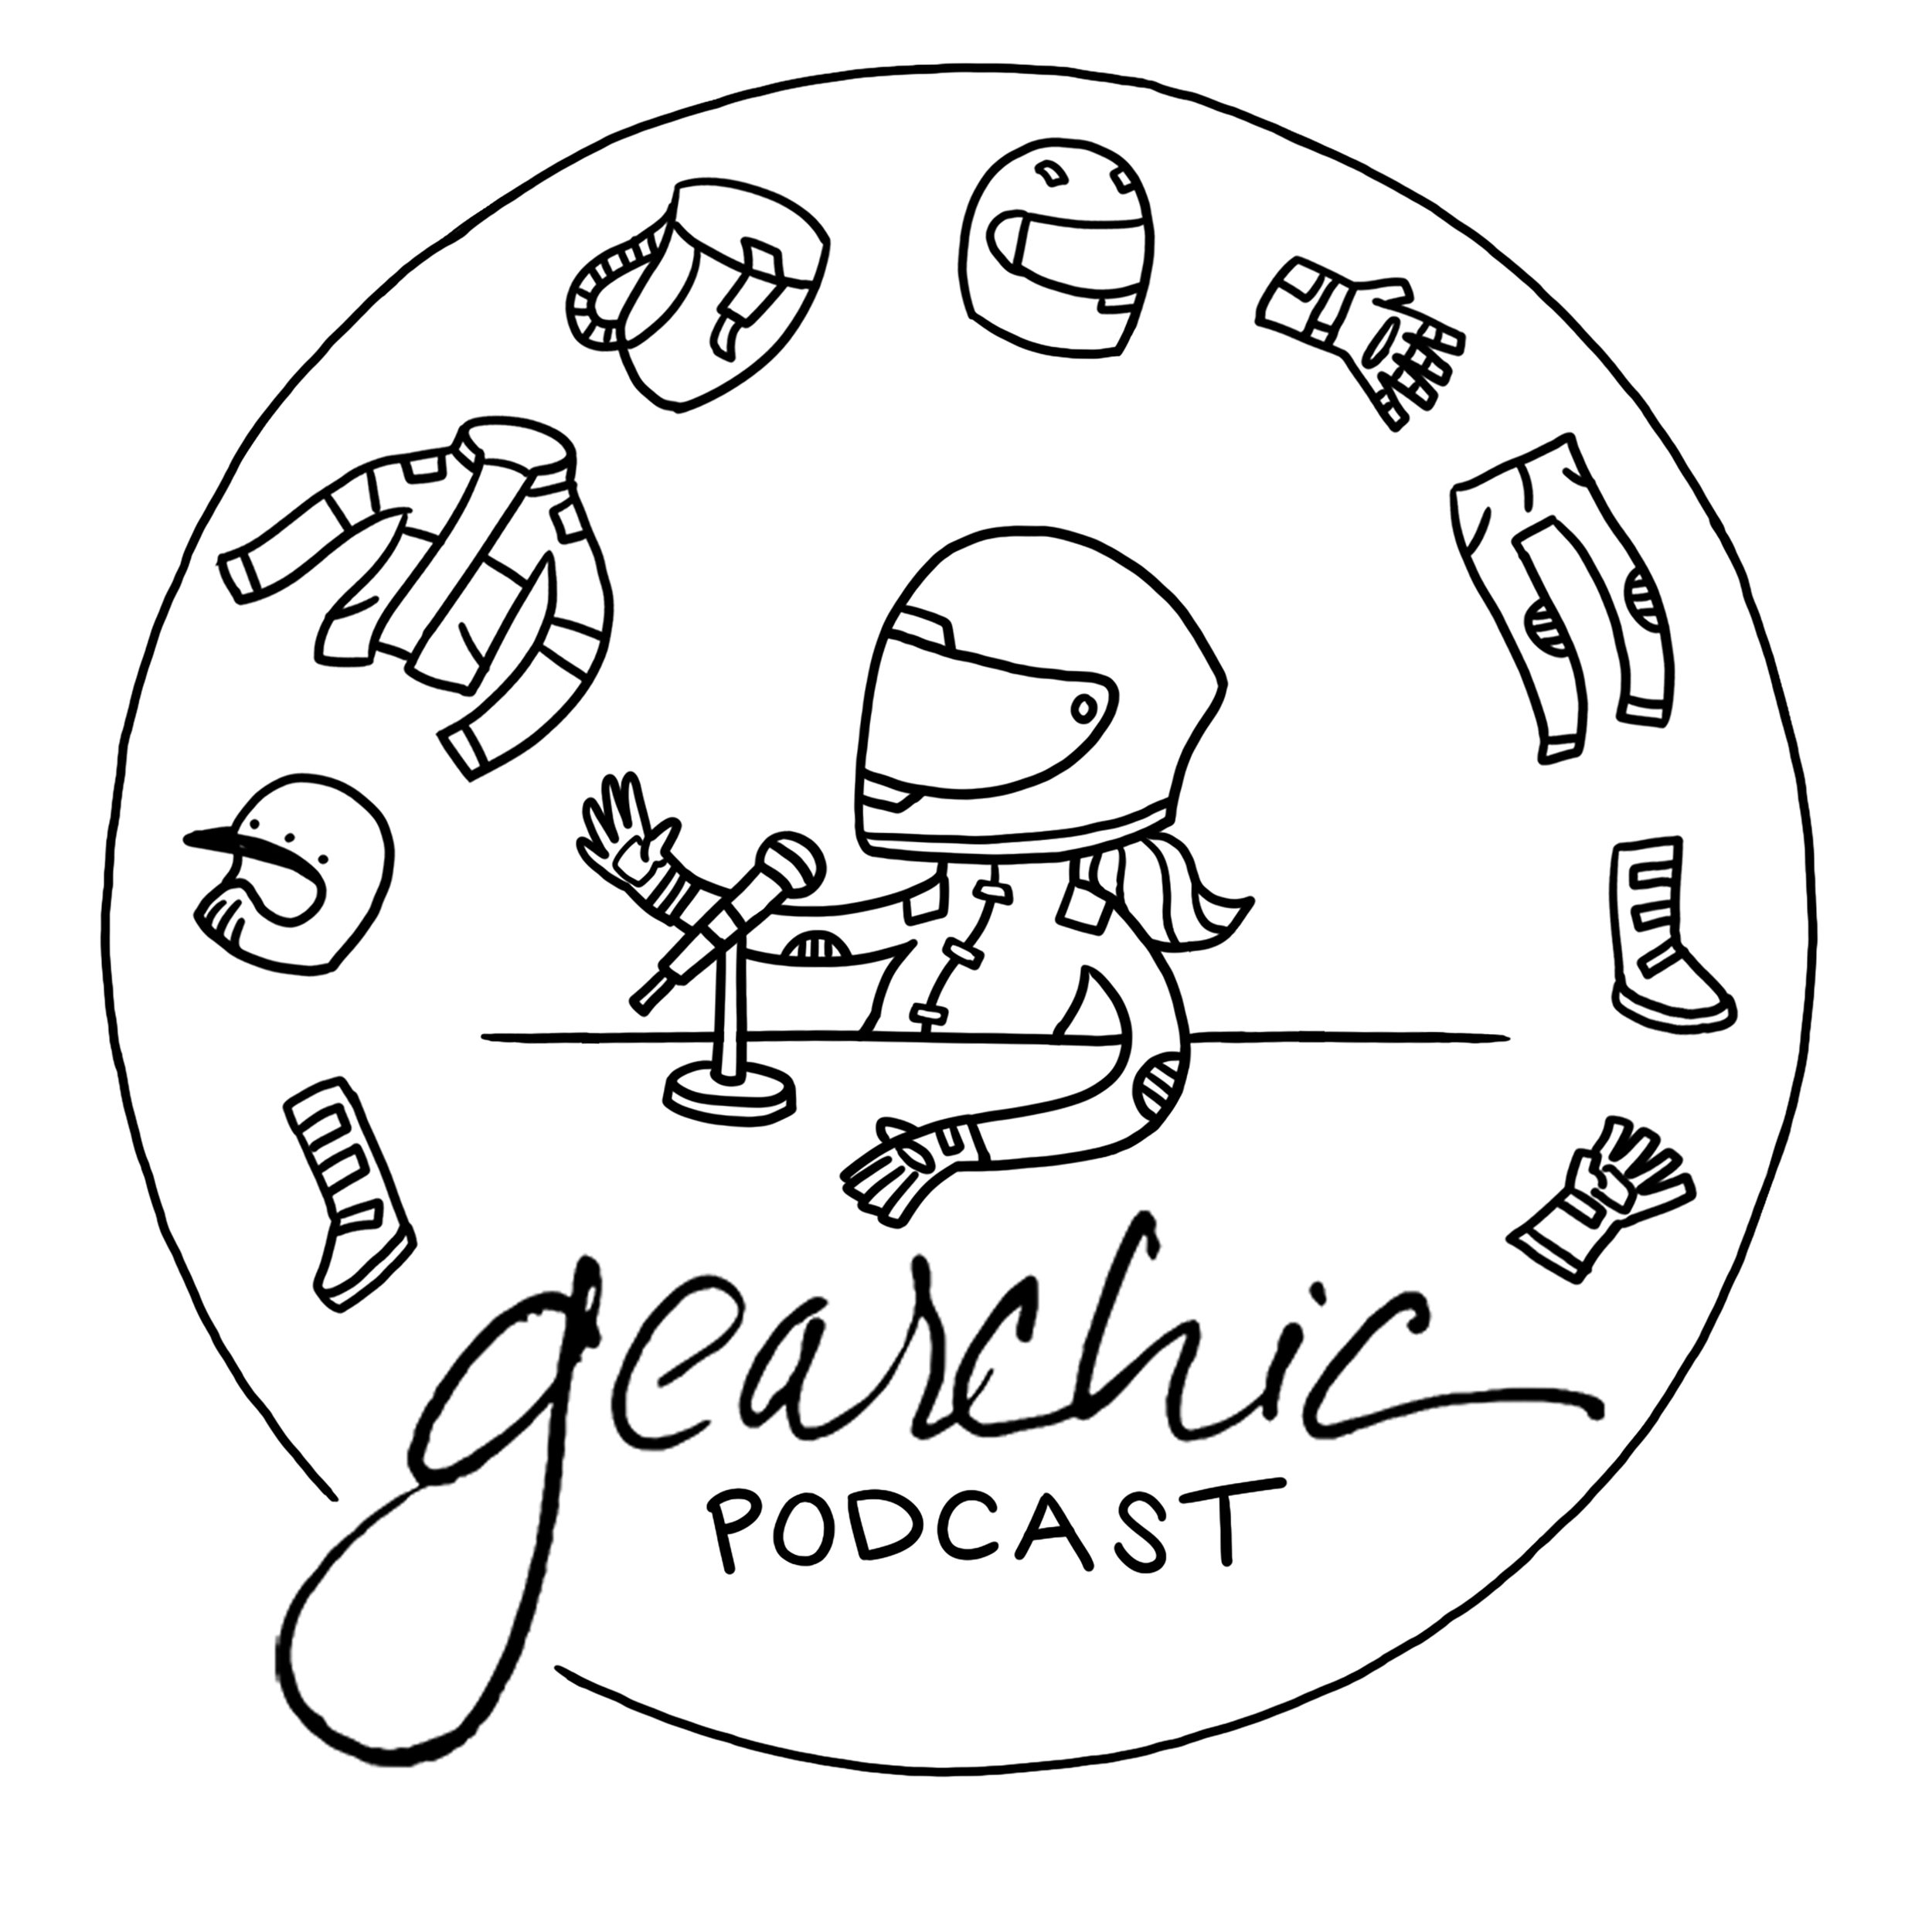 GearChic_Podcast_Logo2_screen.jpg